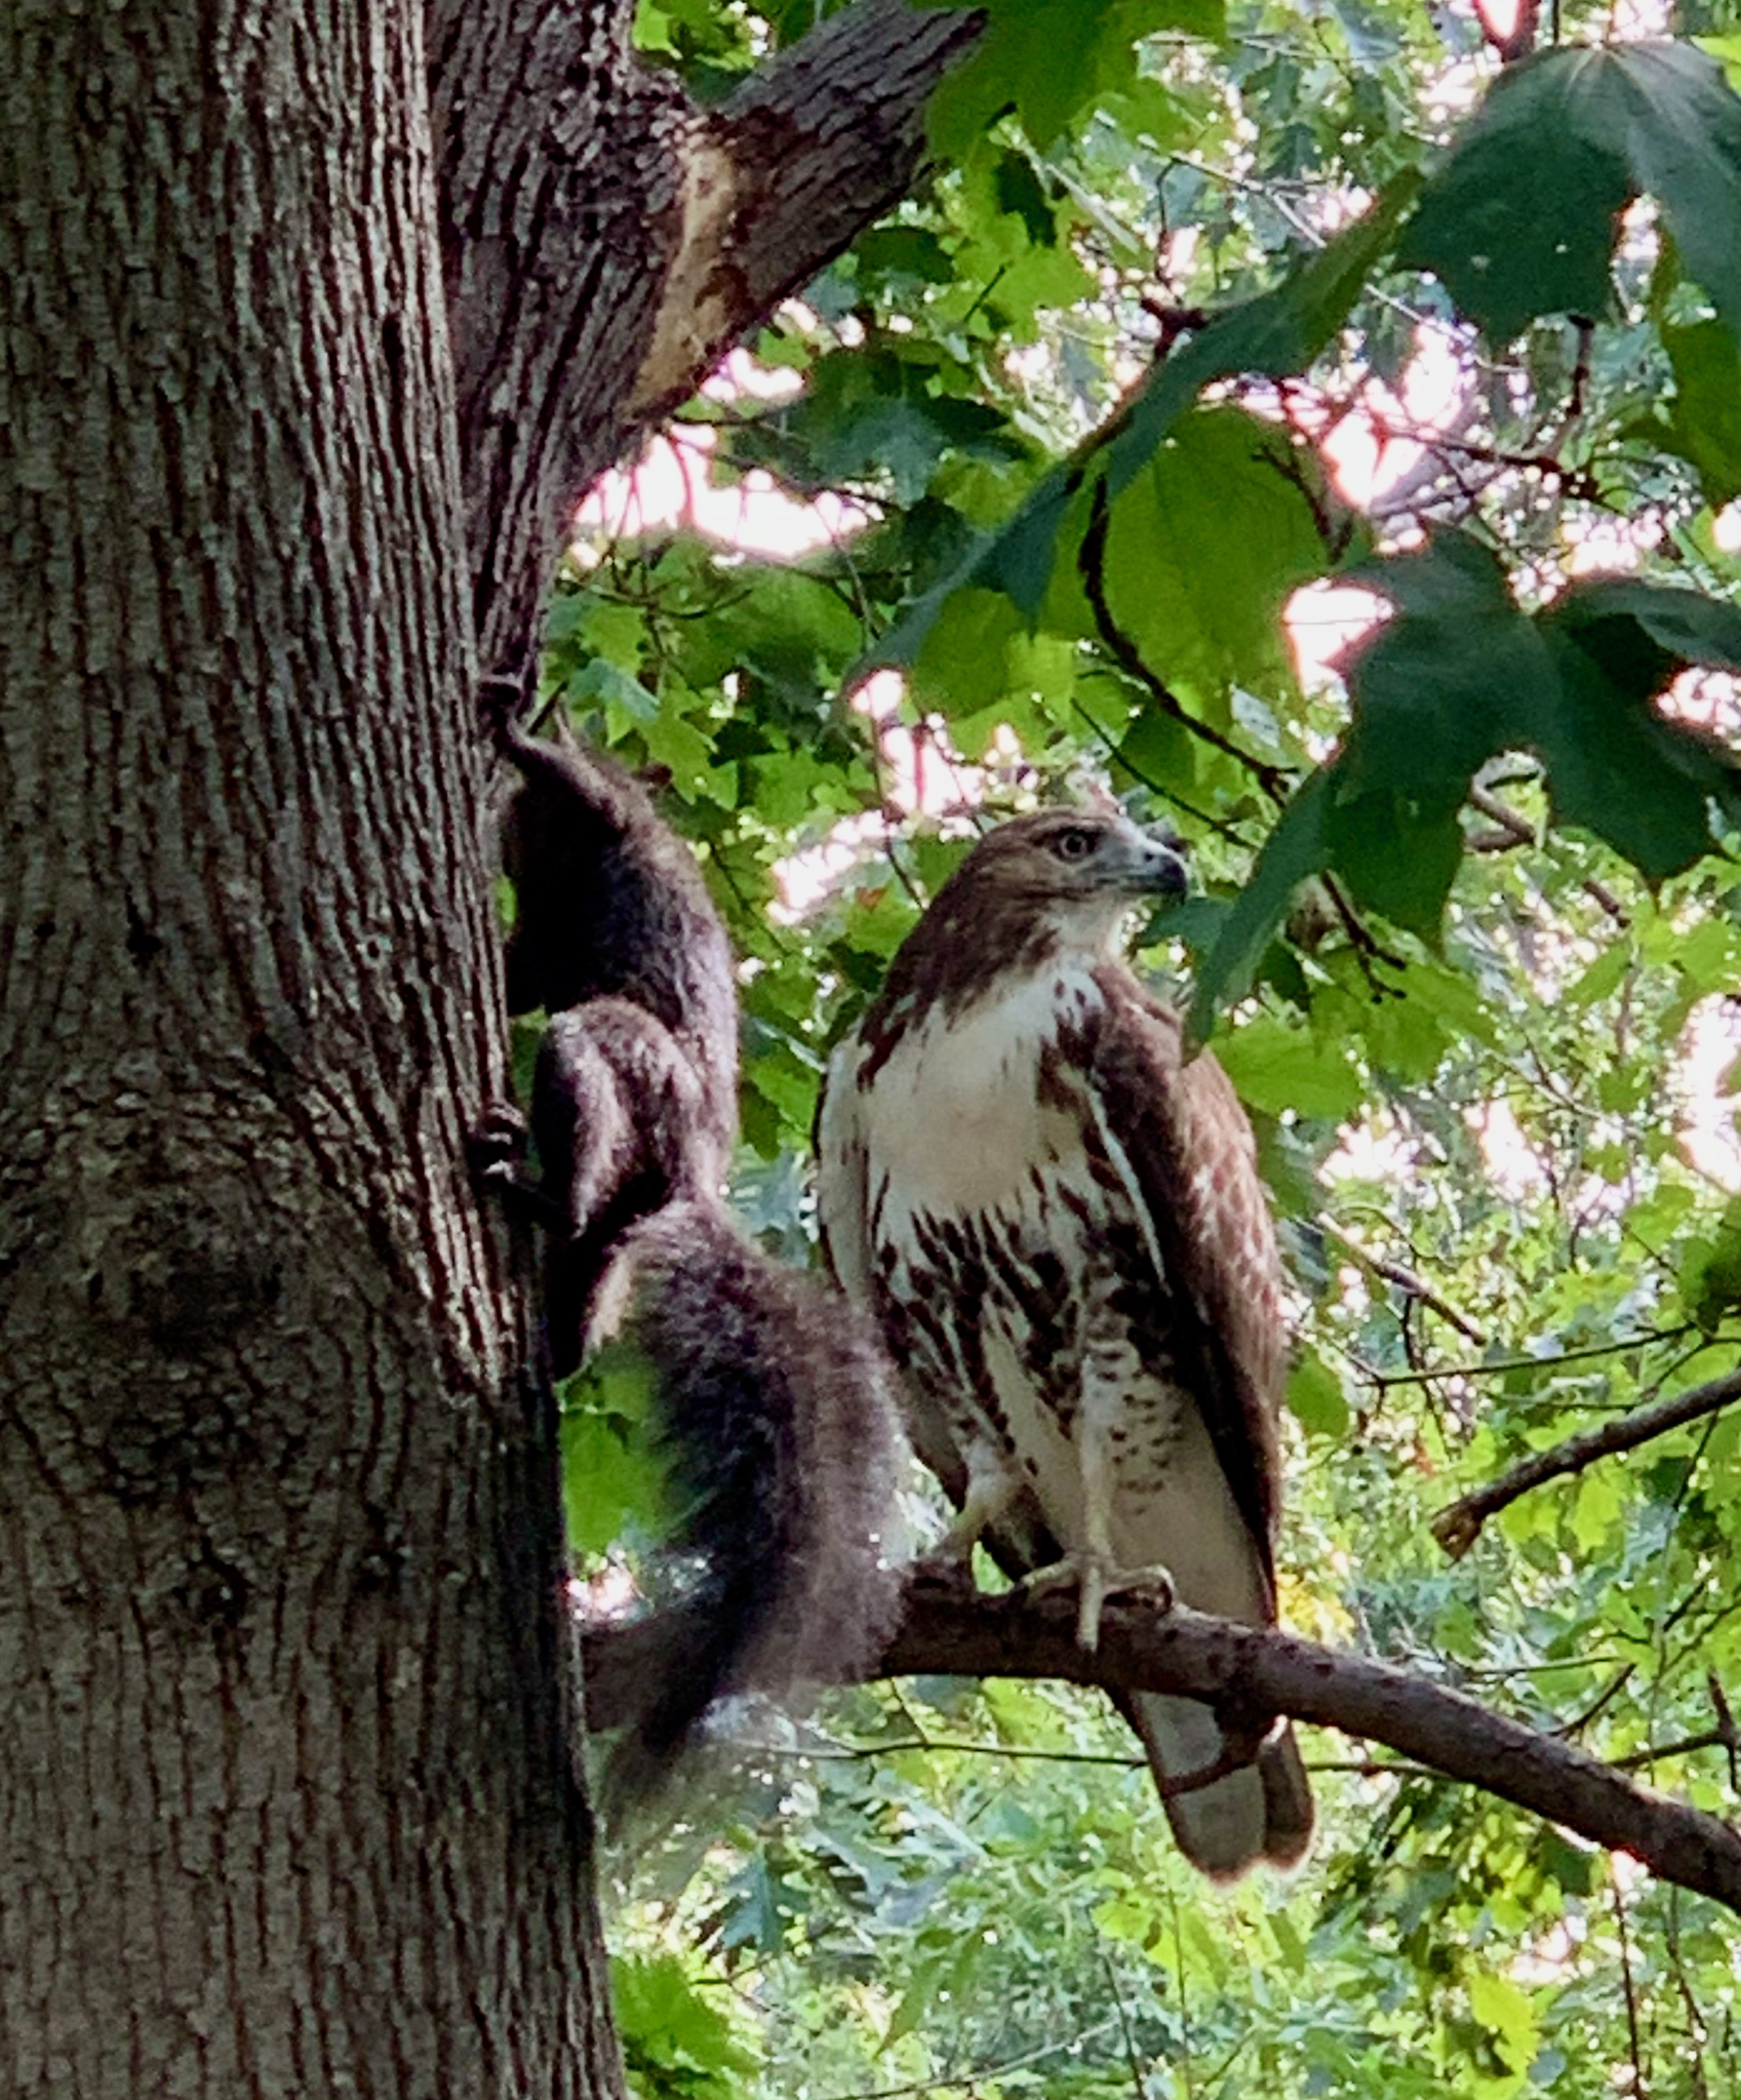 A red-tailed curiously eyes a scampering black squirrel in New York City